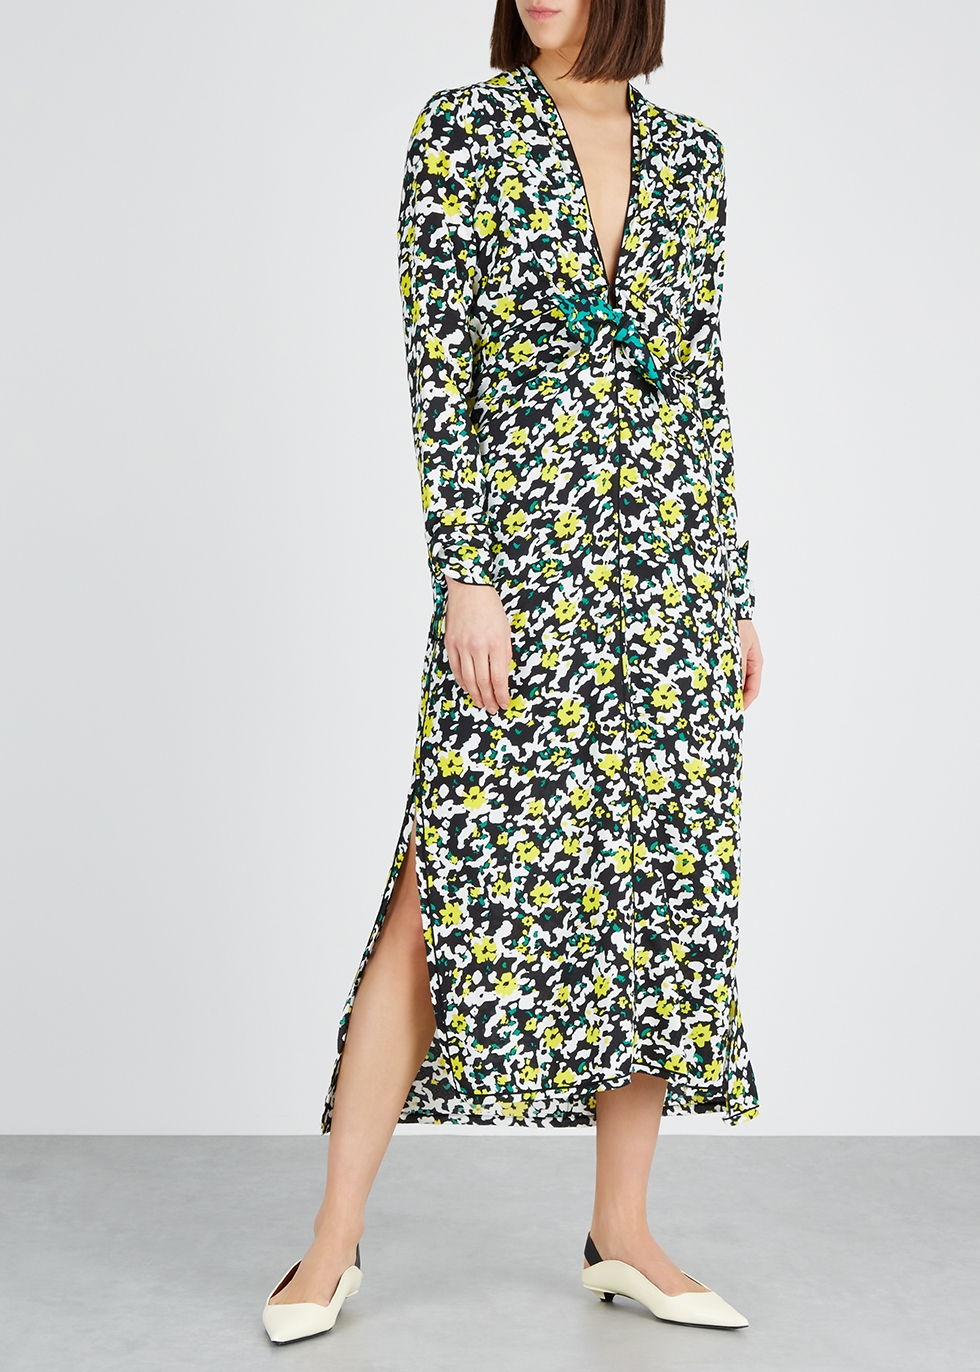 Wildflower floral-print midi dress - Proenza Schouler